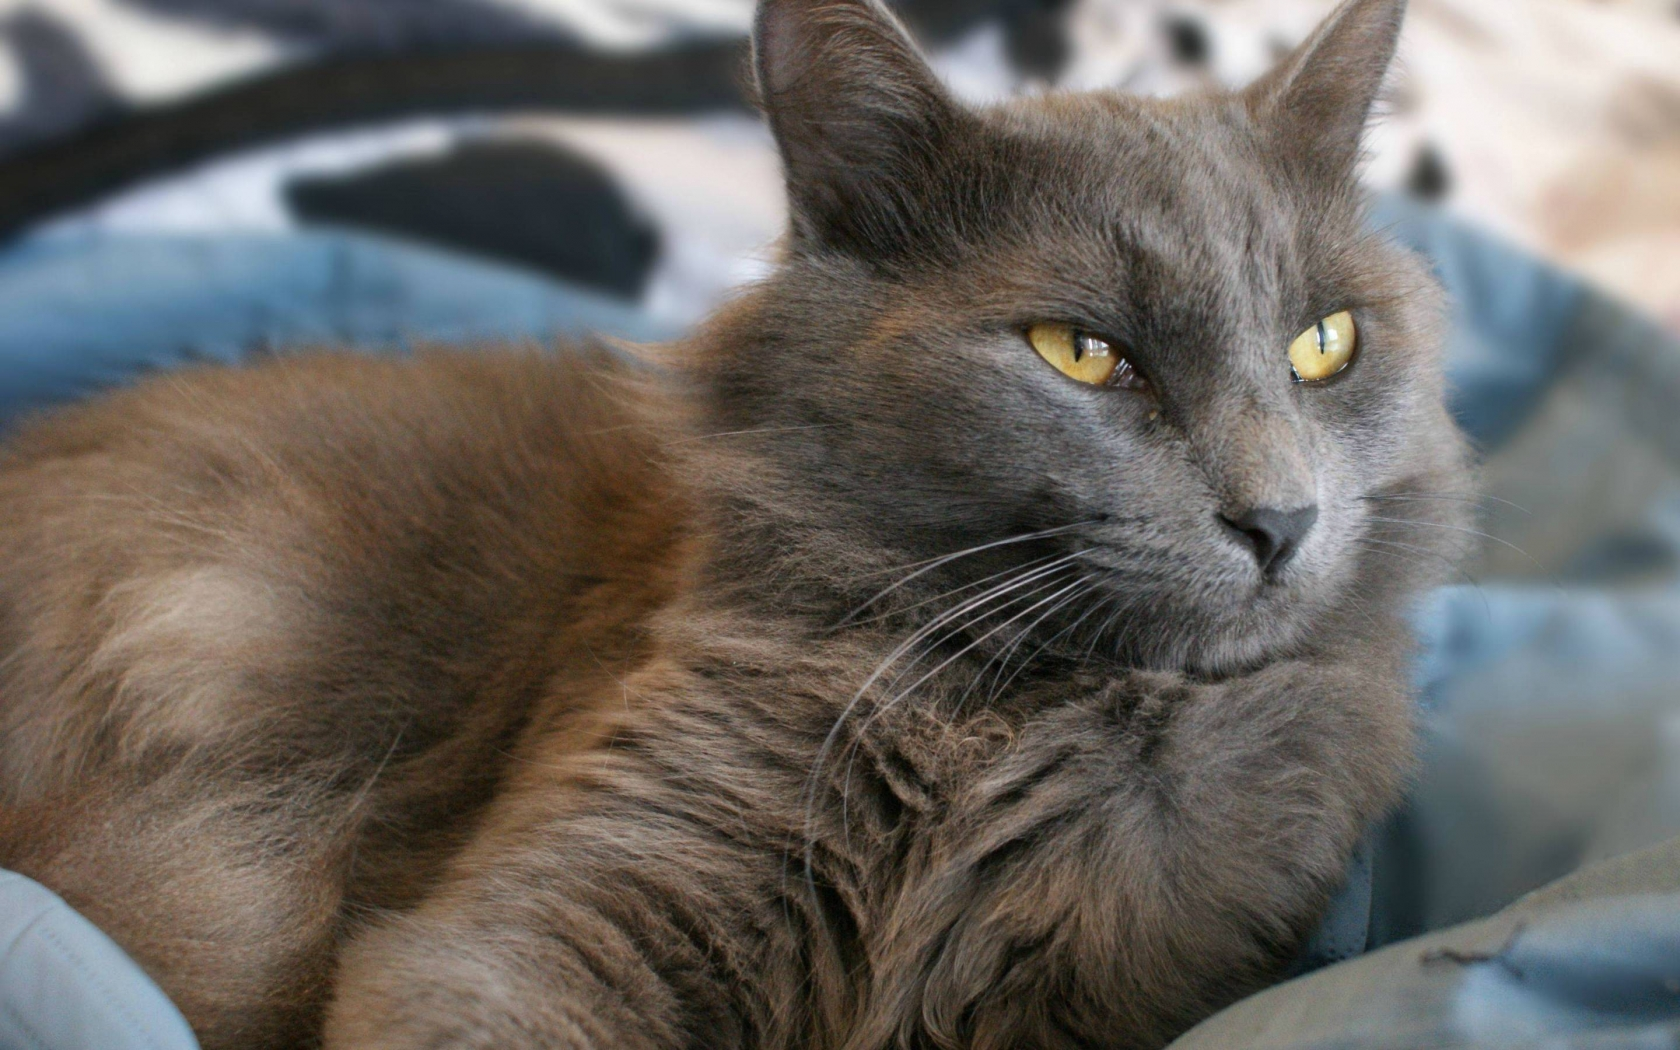 Yellow Eyes Nebelung Cat for 1680 x 1050 widescreen resolution